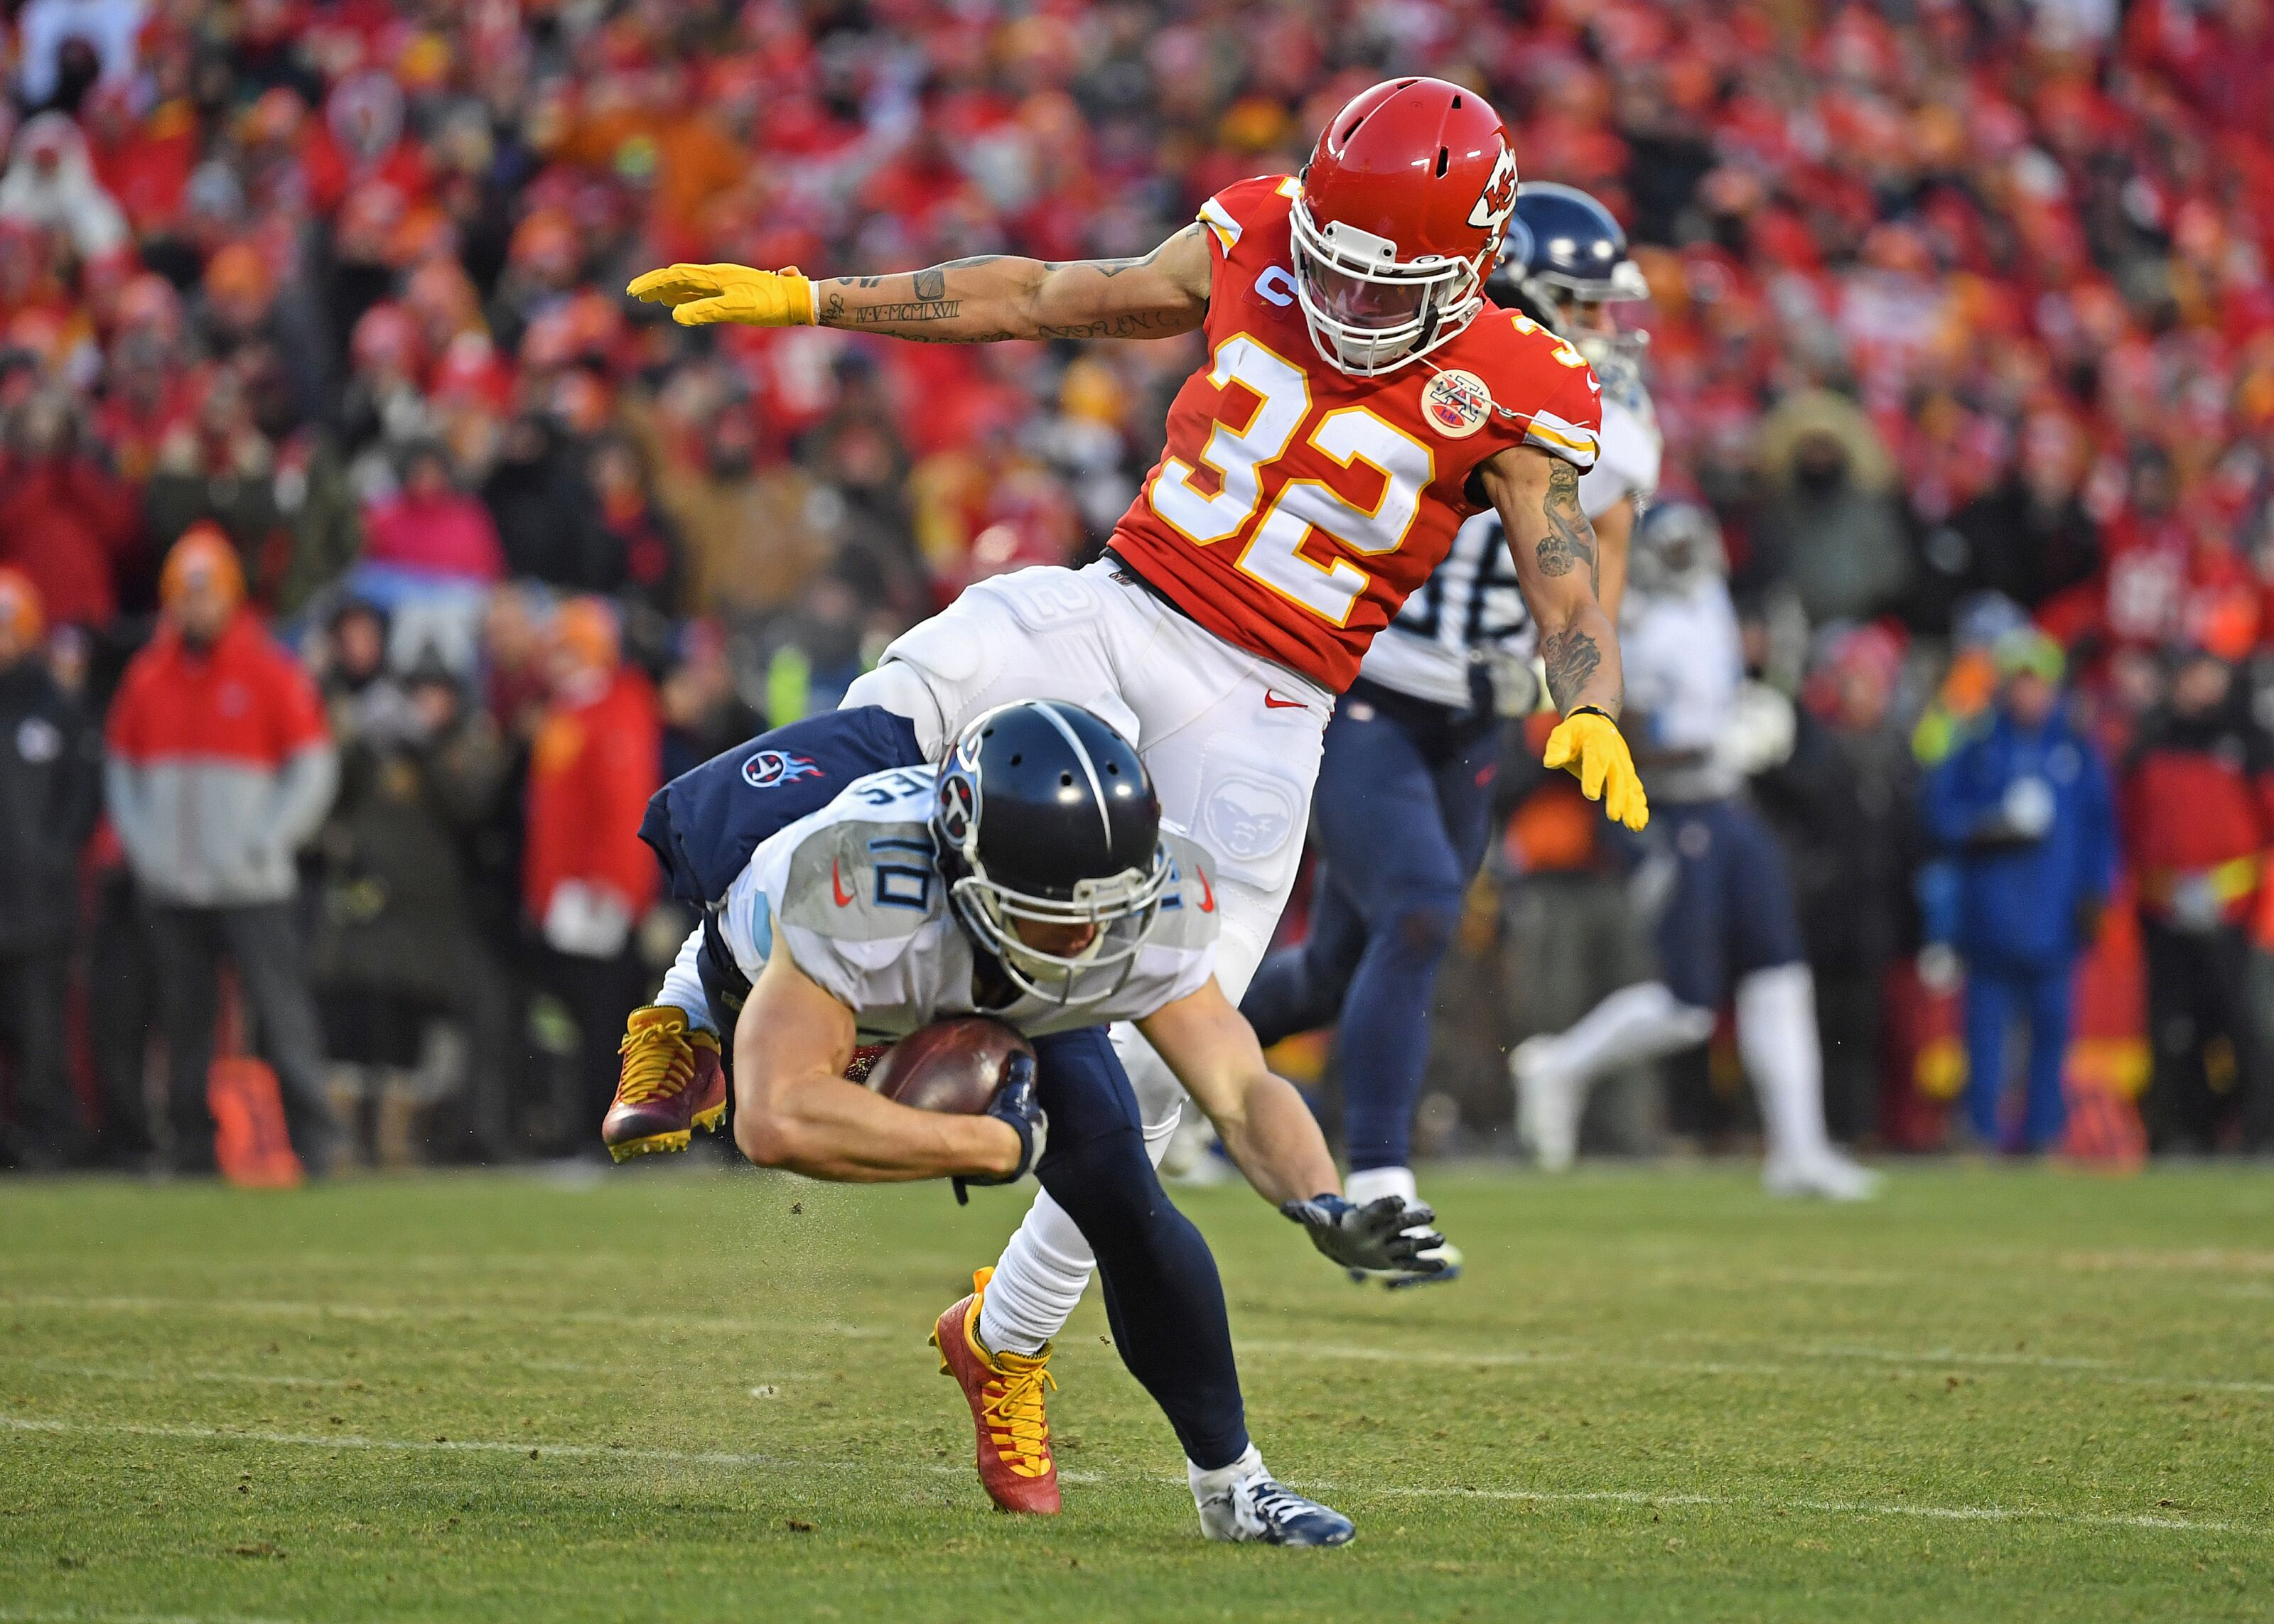 KC Chiefs: Free agent acquisitions made huge difference in title game